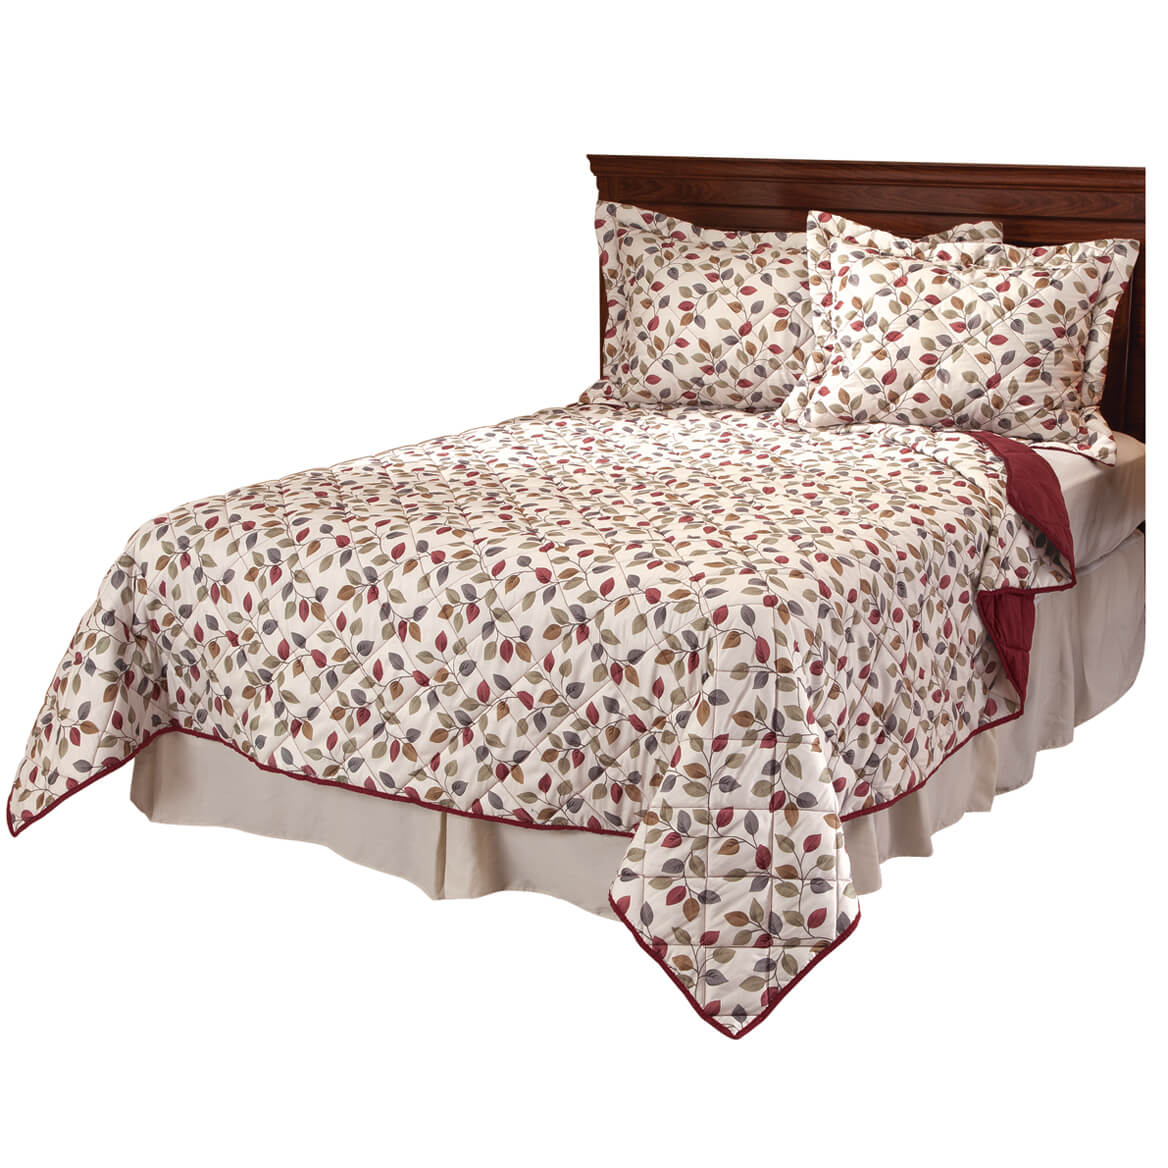 The Virginia Reversible Comforter by OakRidge™